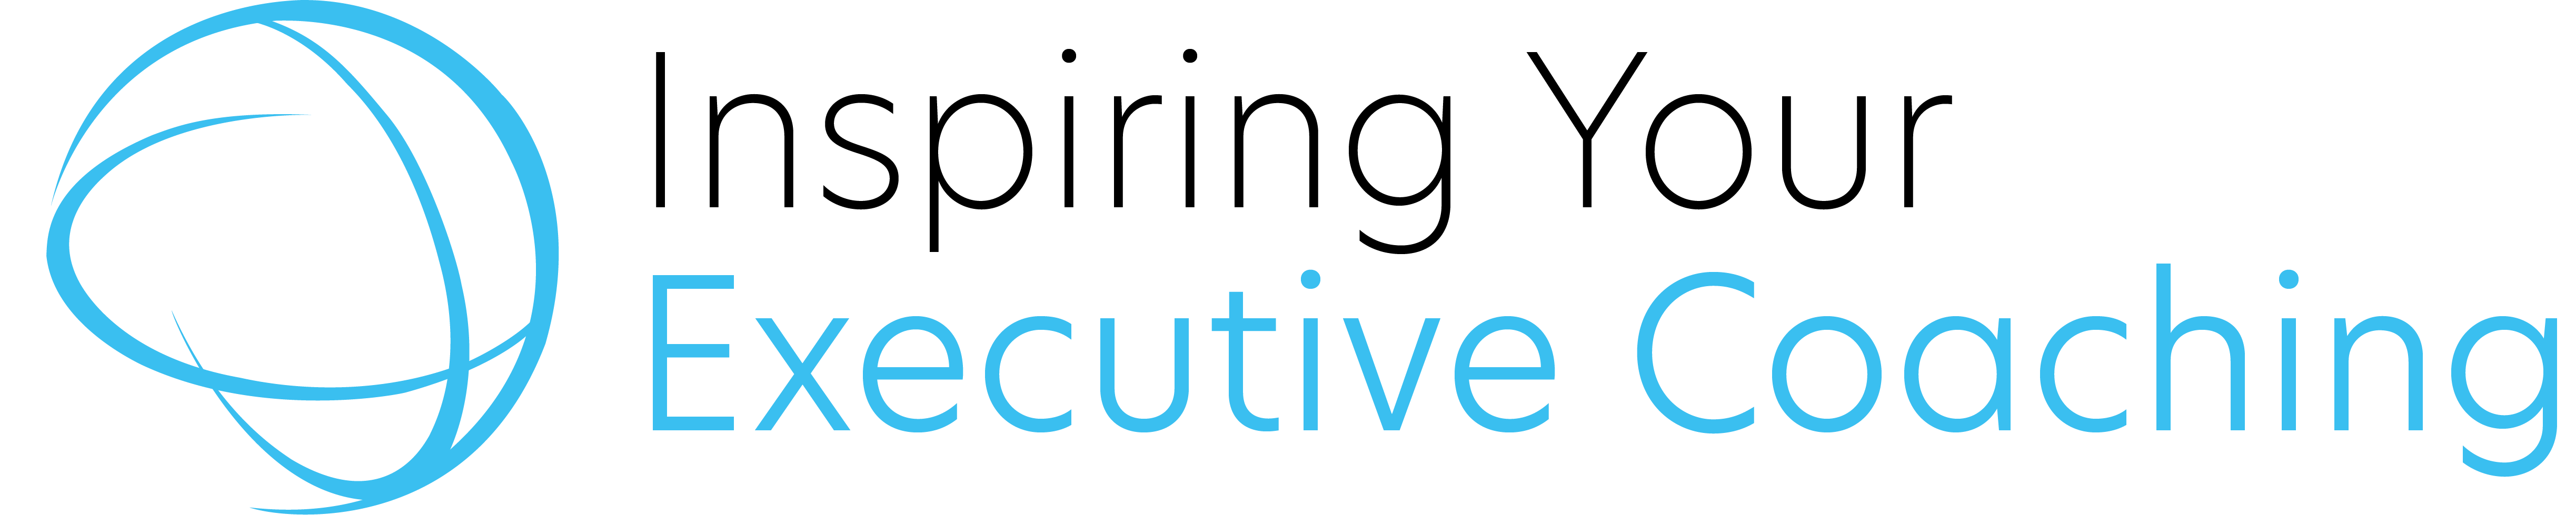 New IYS executive coaching